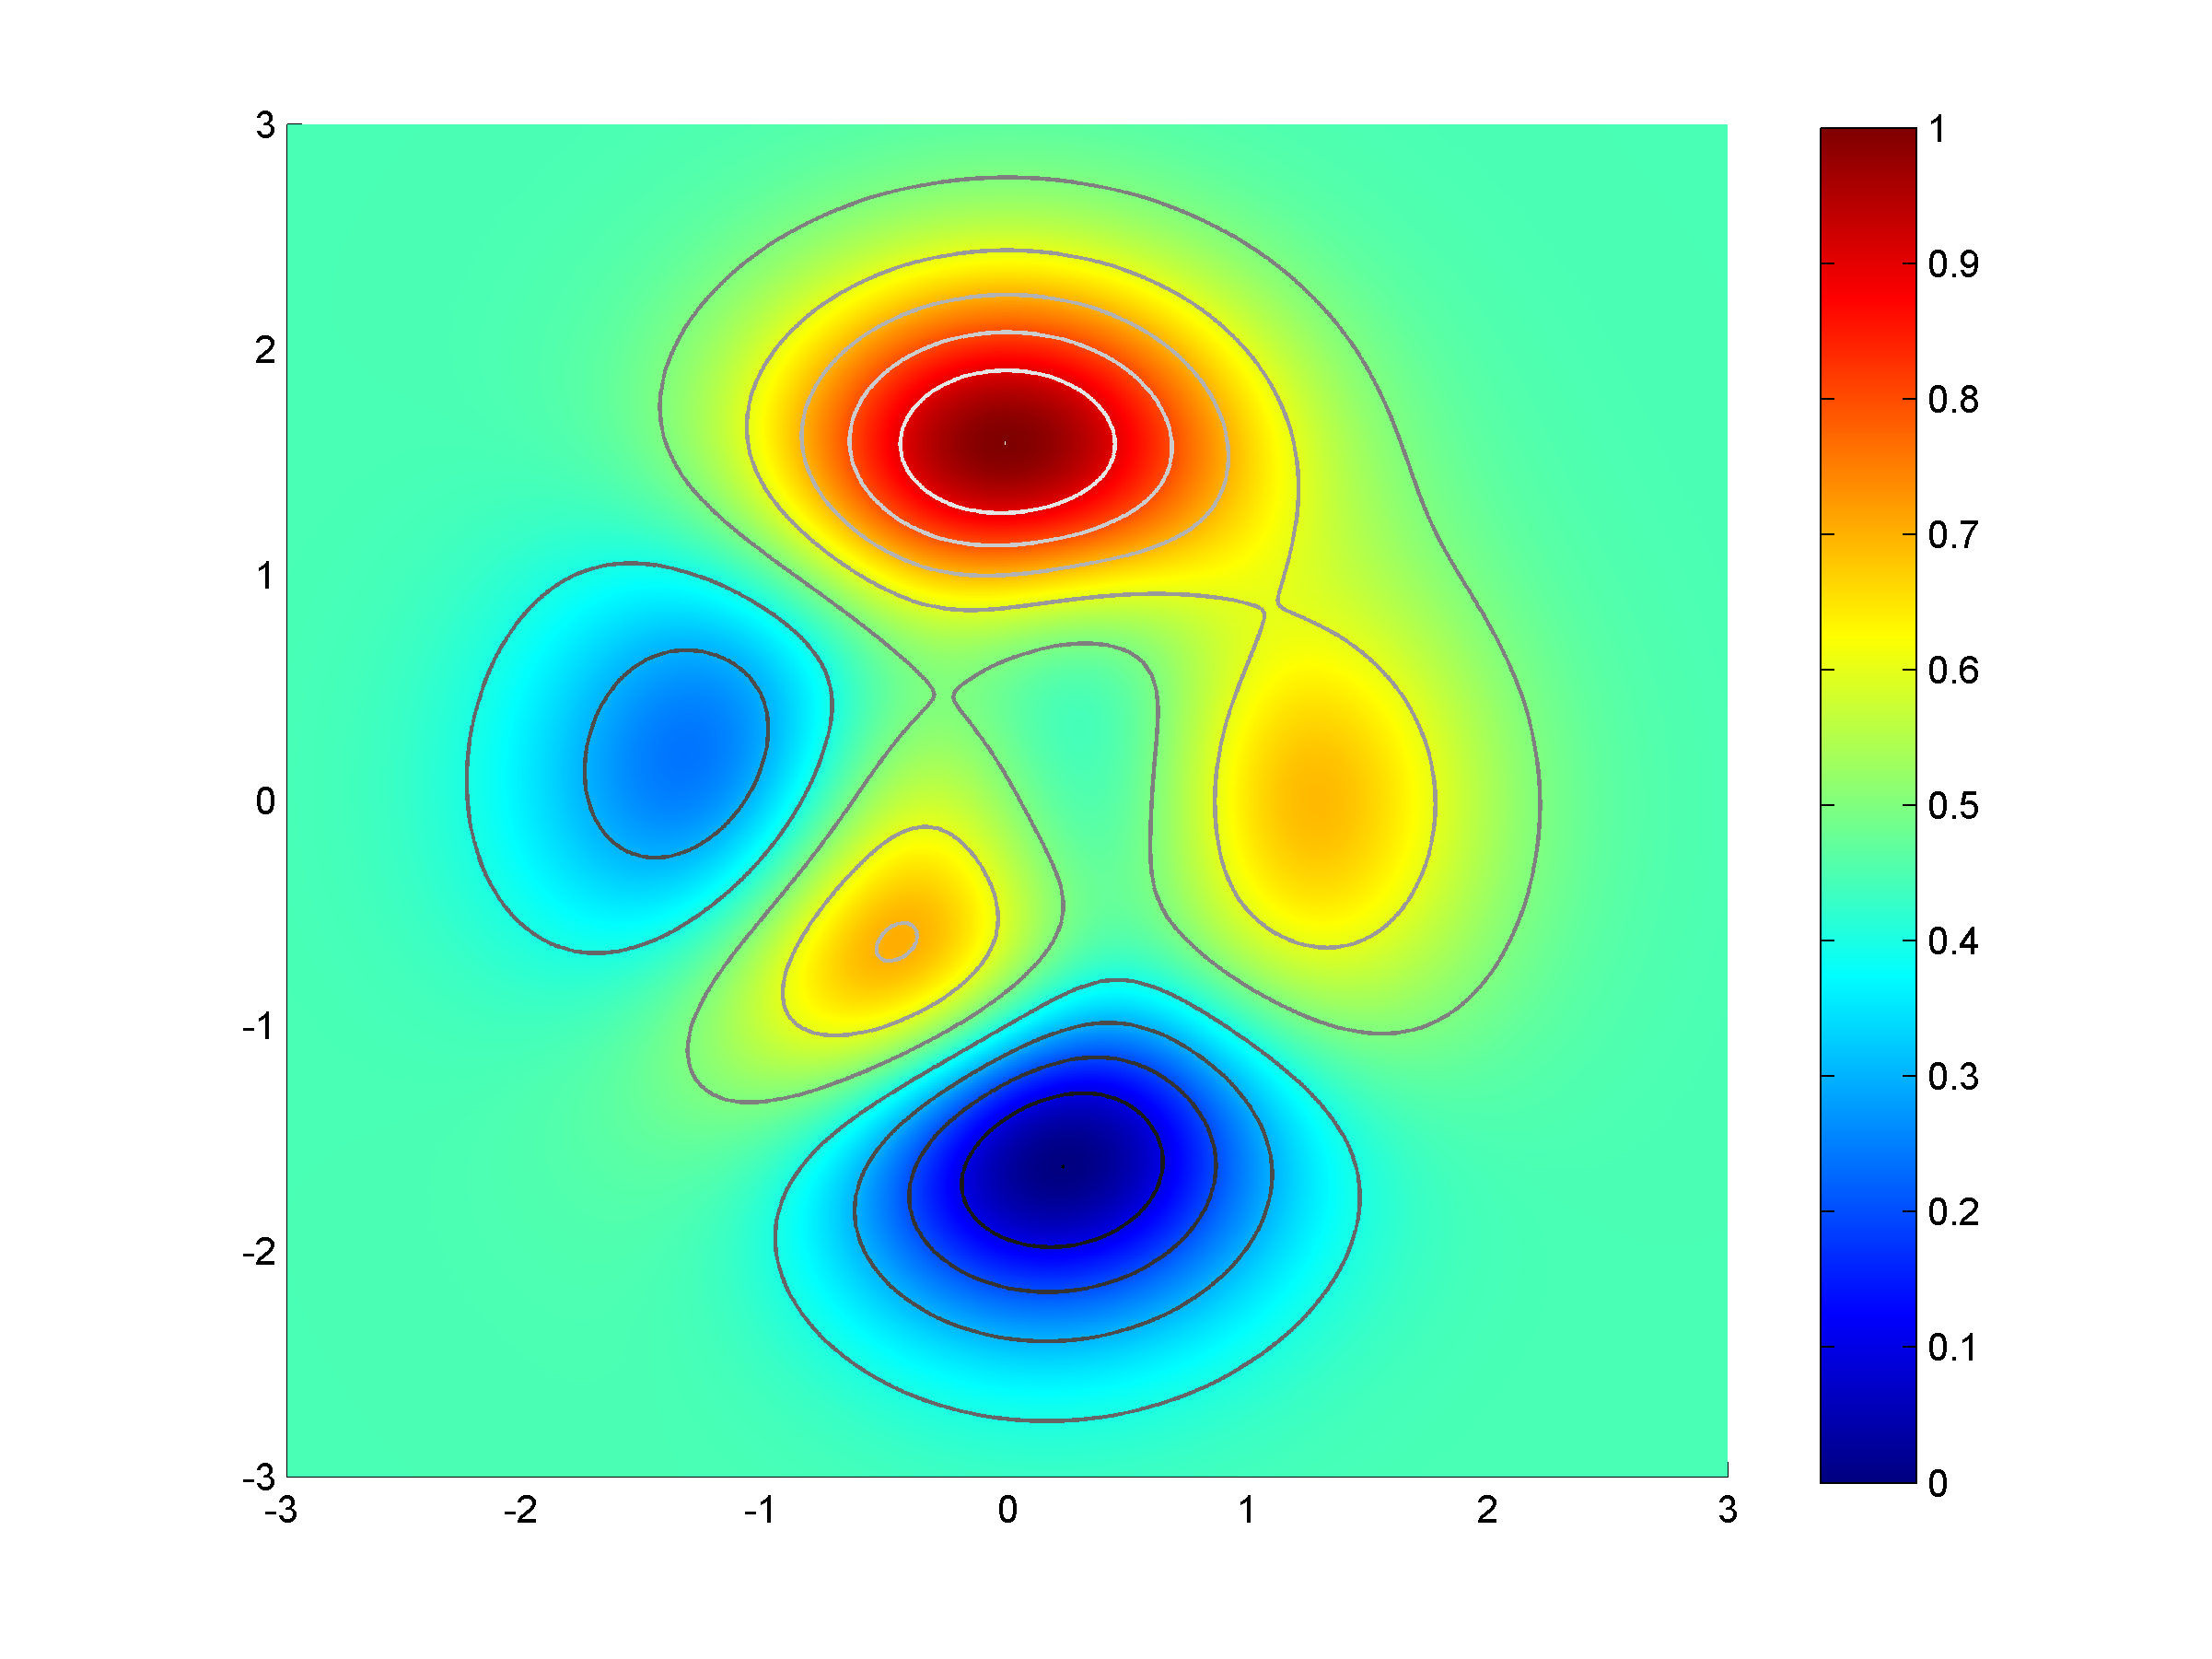 How to fade contour lines without contour lines? - MATLAB